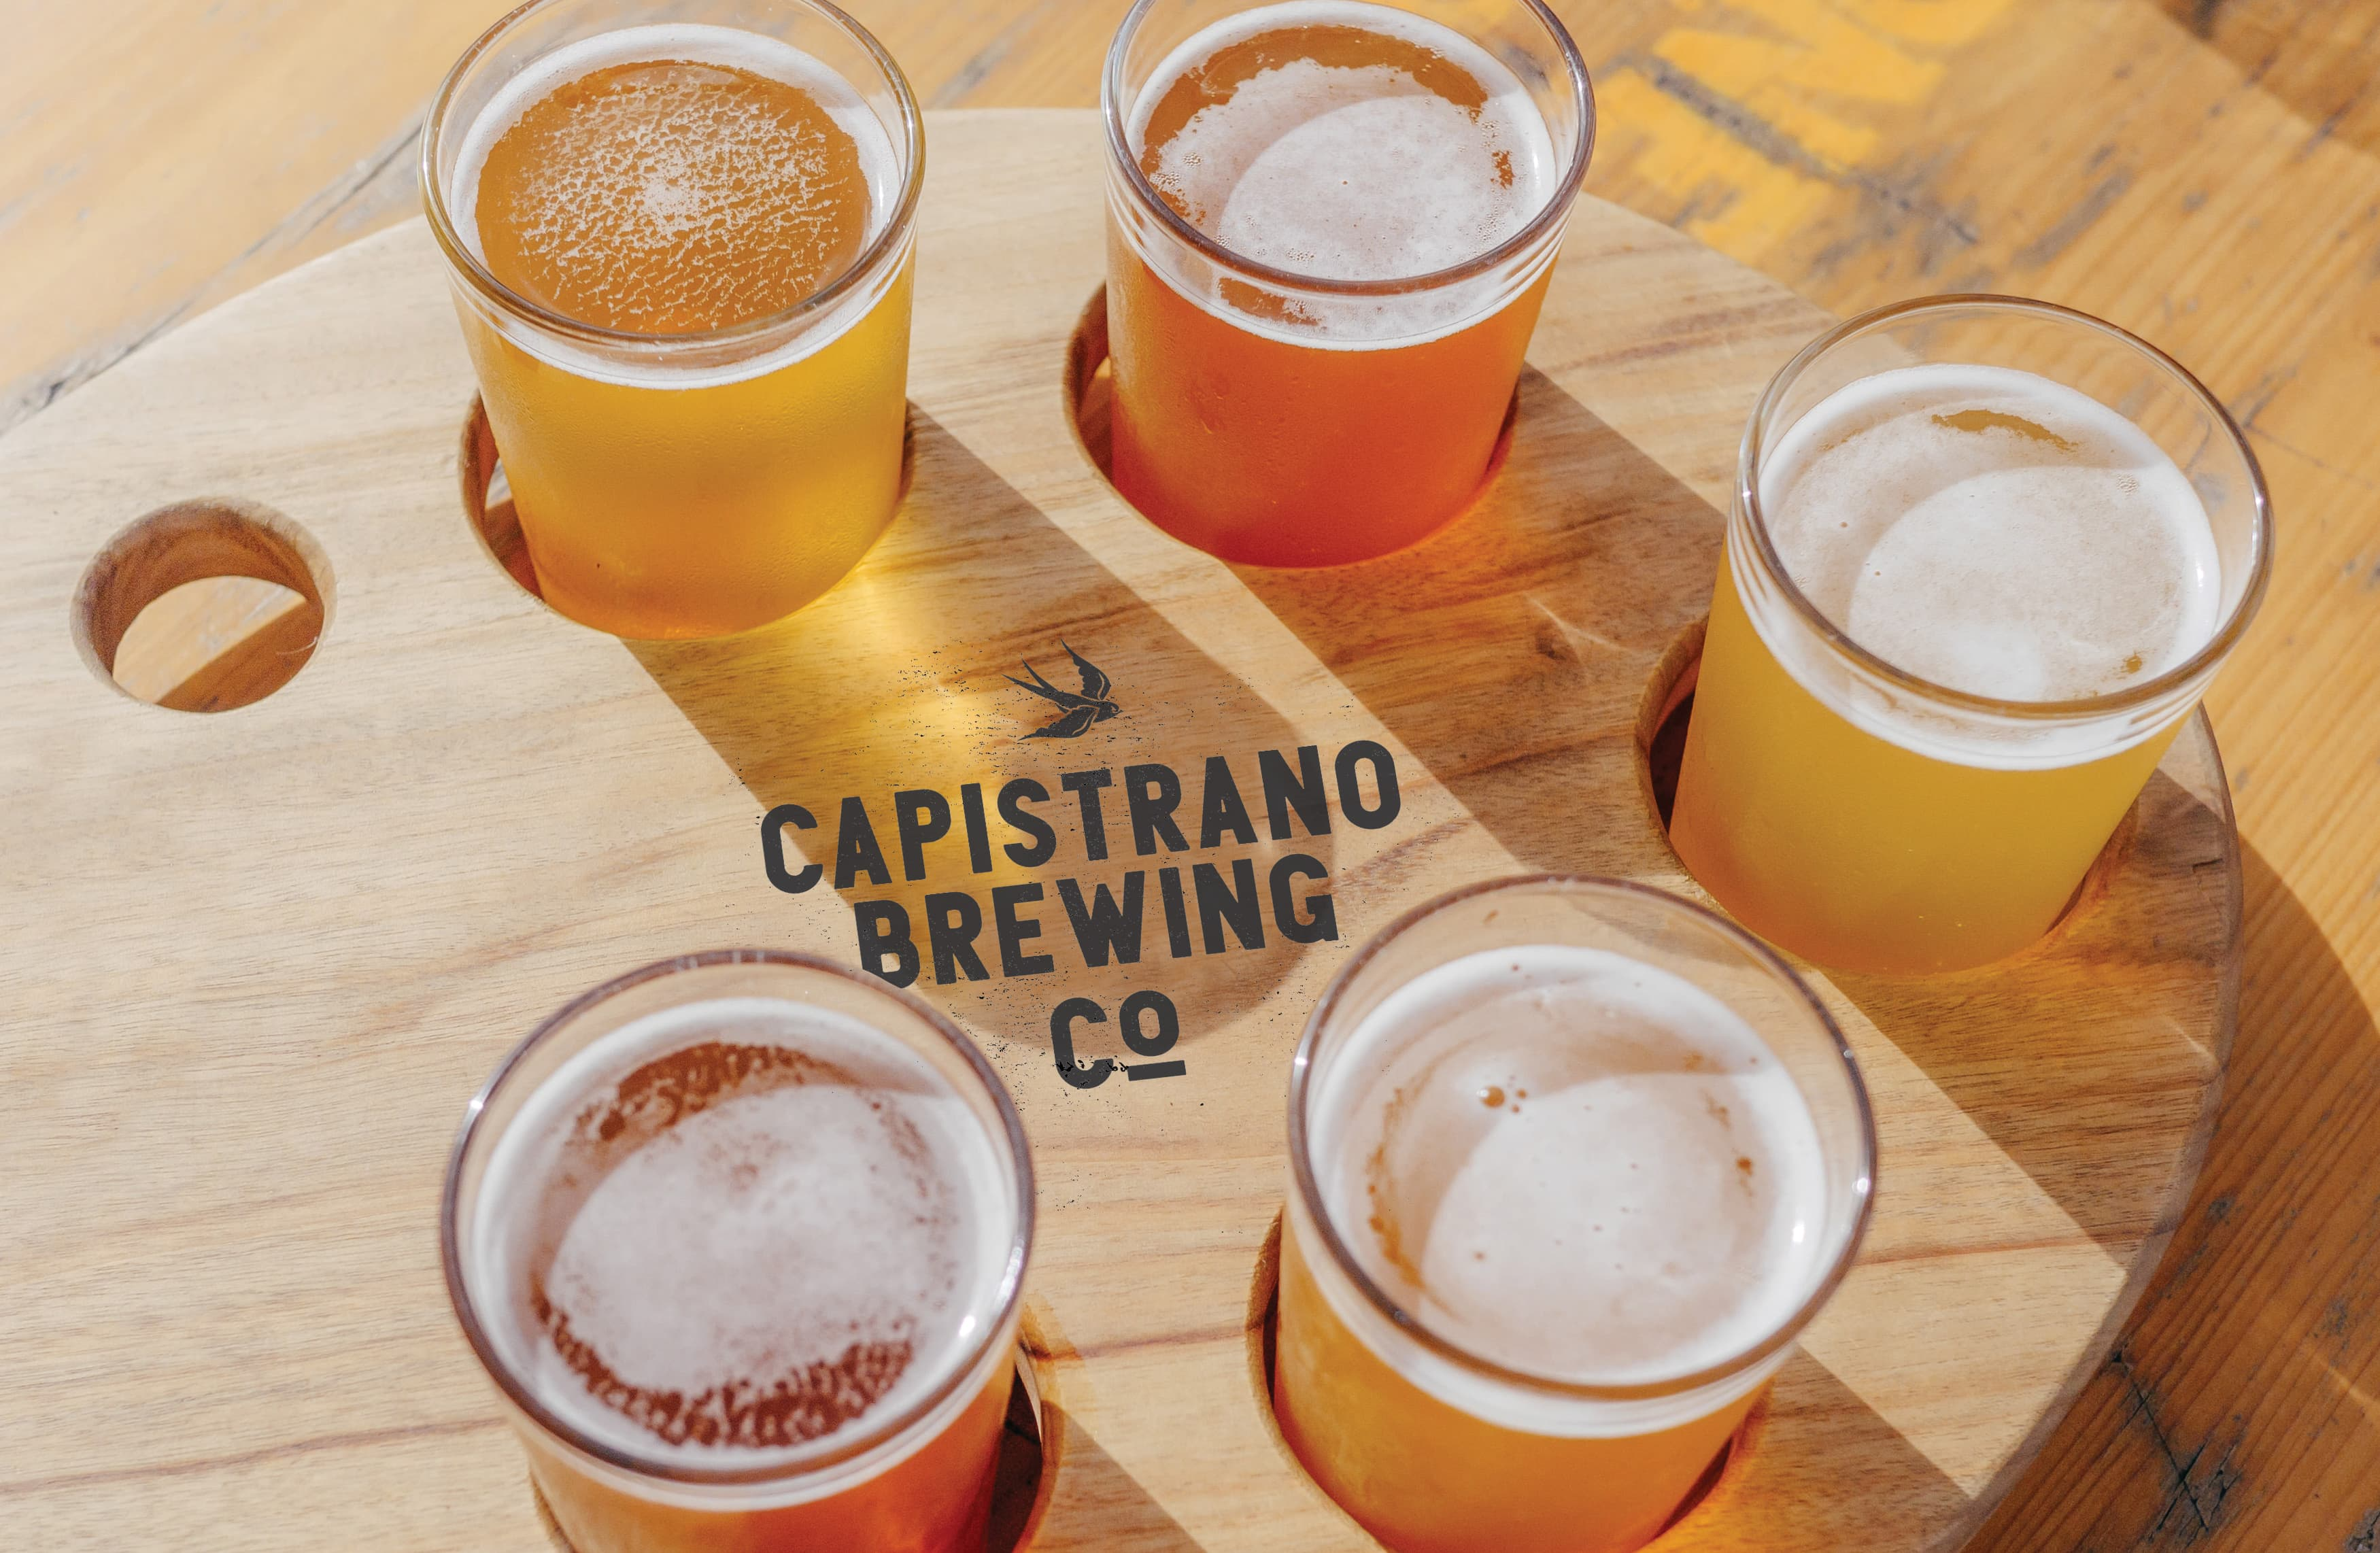 Capo Brew, a brewery located in the historic San Juan Capistrano, California, worked with RSM Design to craft a brand identity that conveyed its historic roots and cowboy personality. Branding.